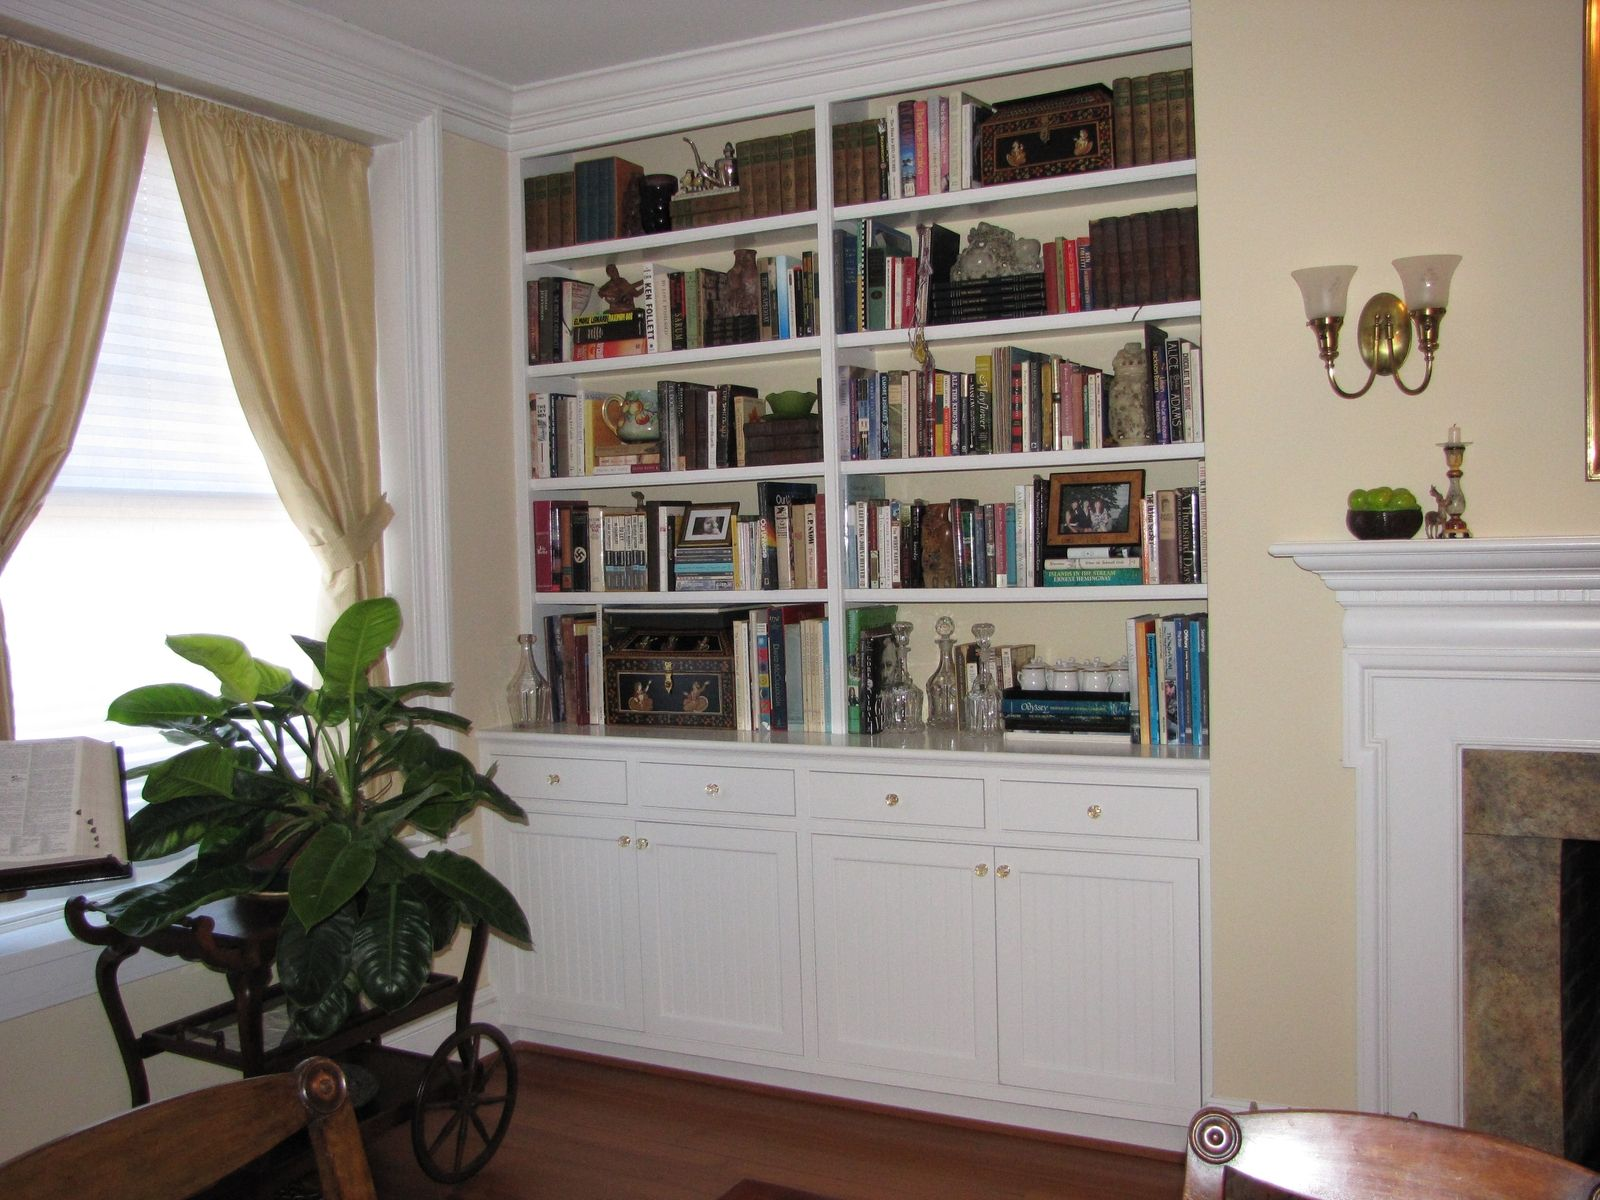 Handmade Built In Bookshelves By Kent Cabinetry & Millwork